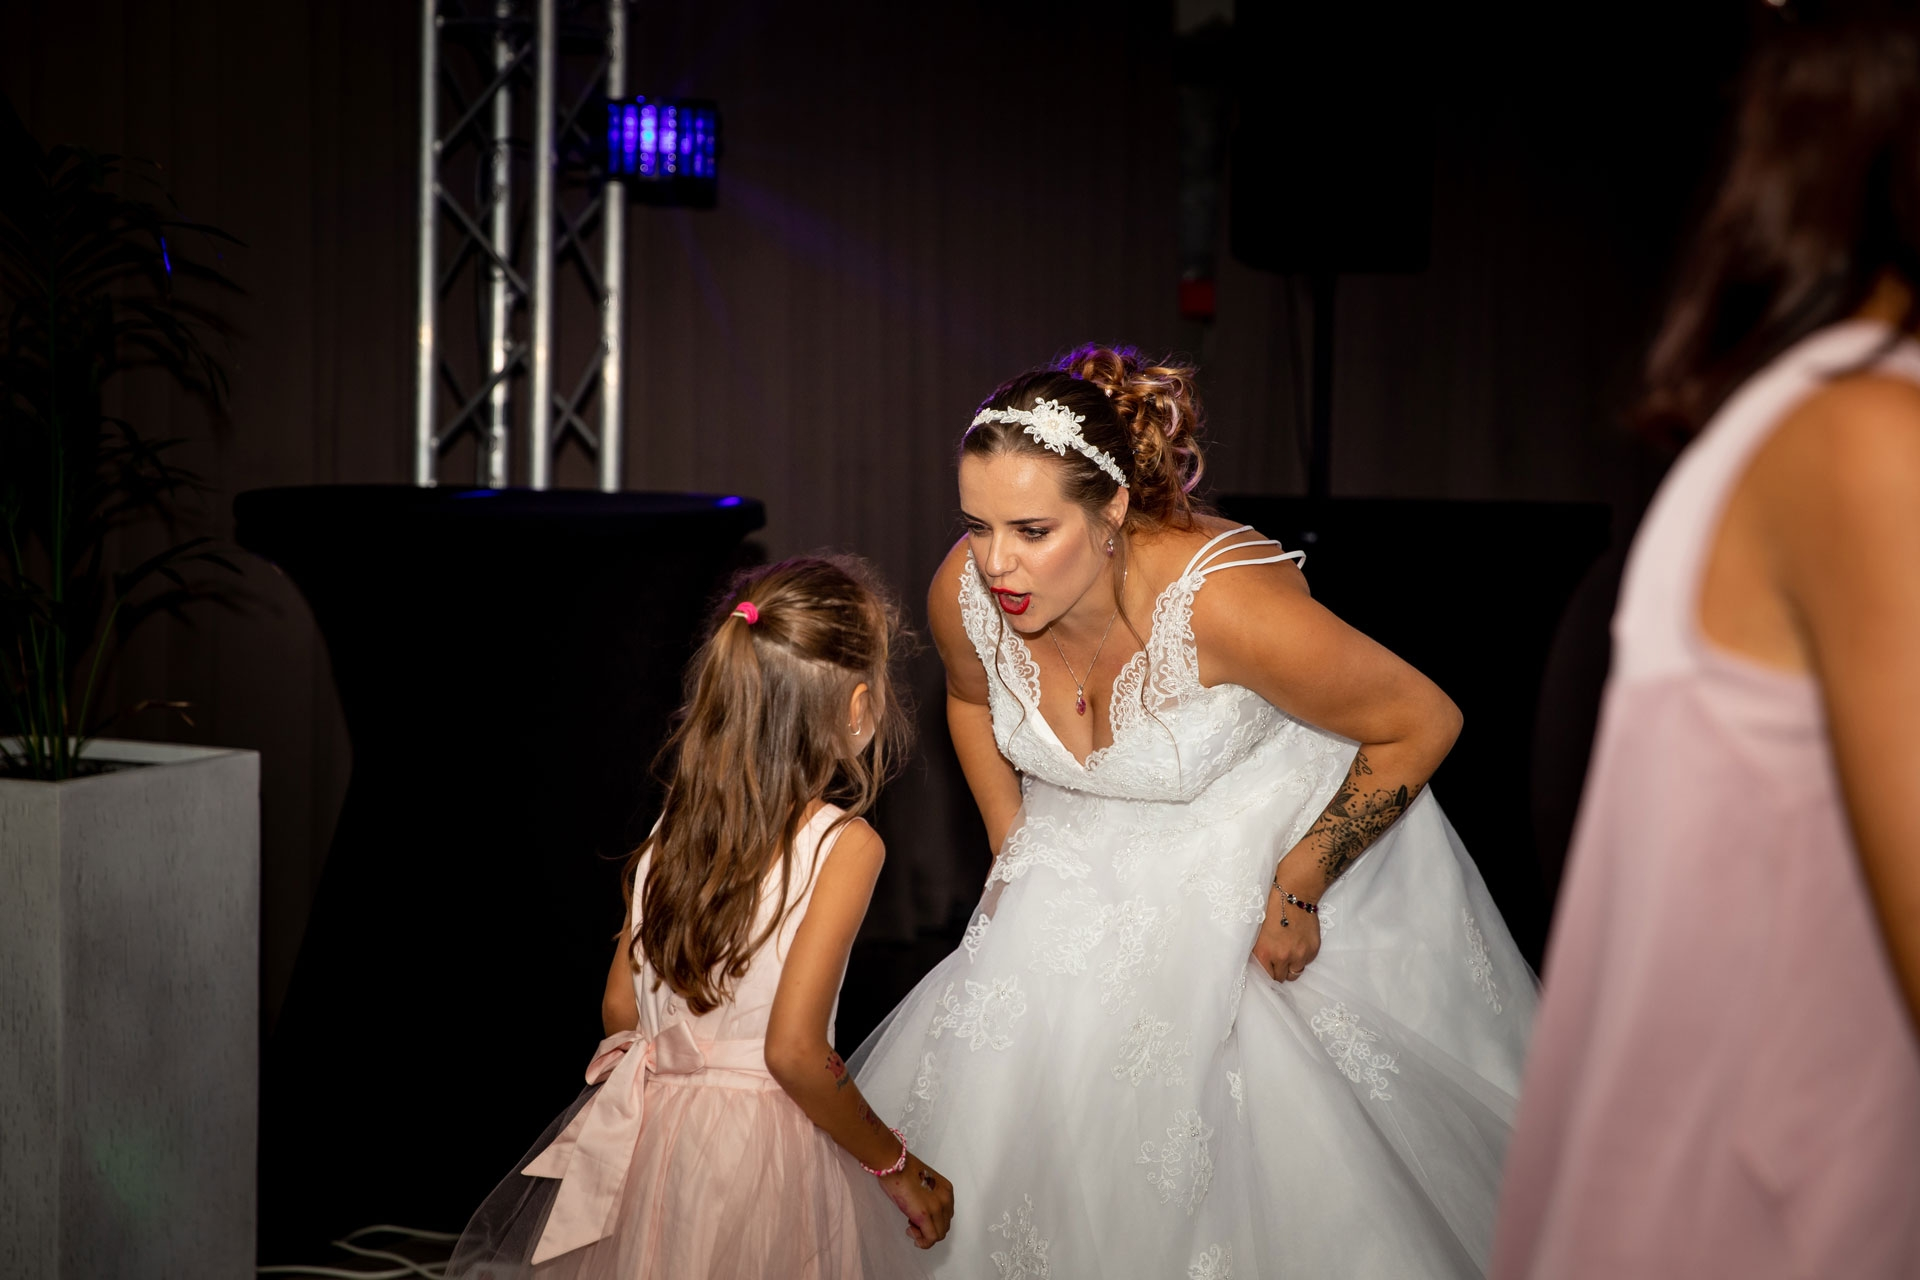 20200912-mariage-ophelie-alexandre-091